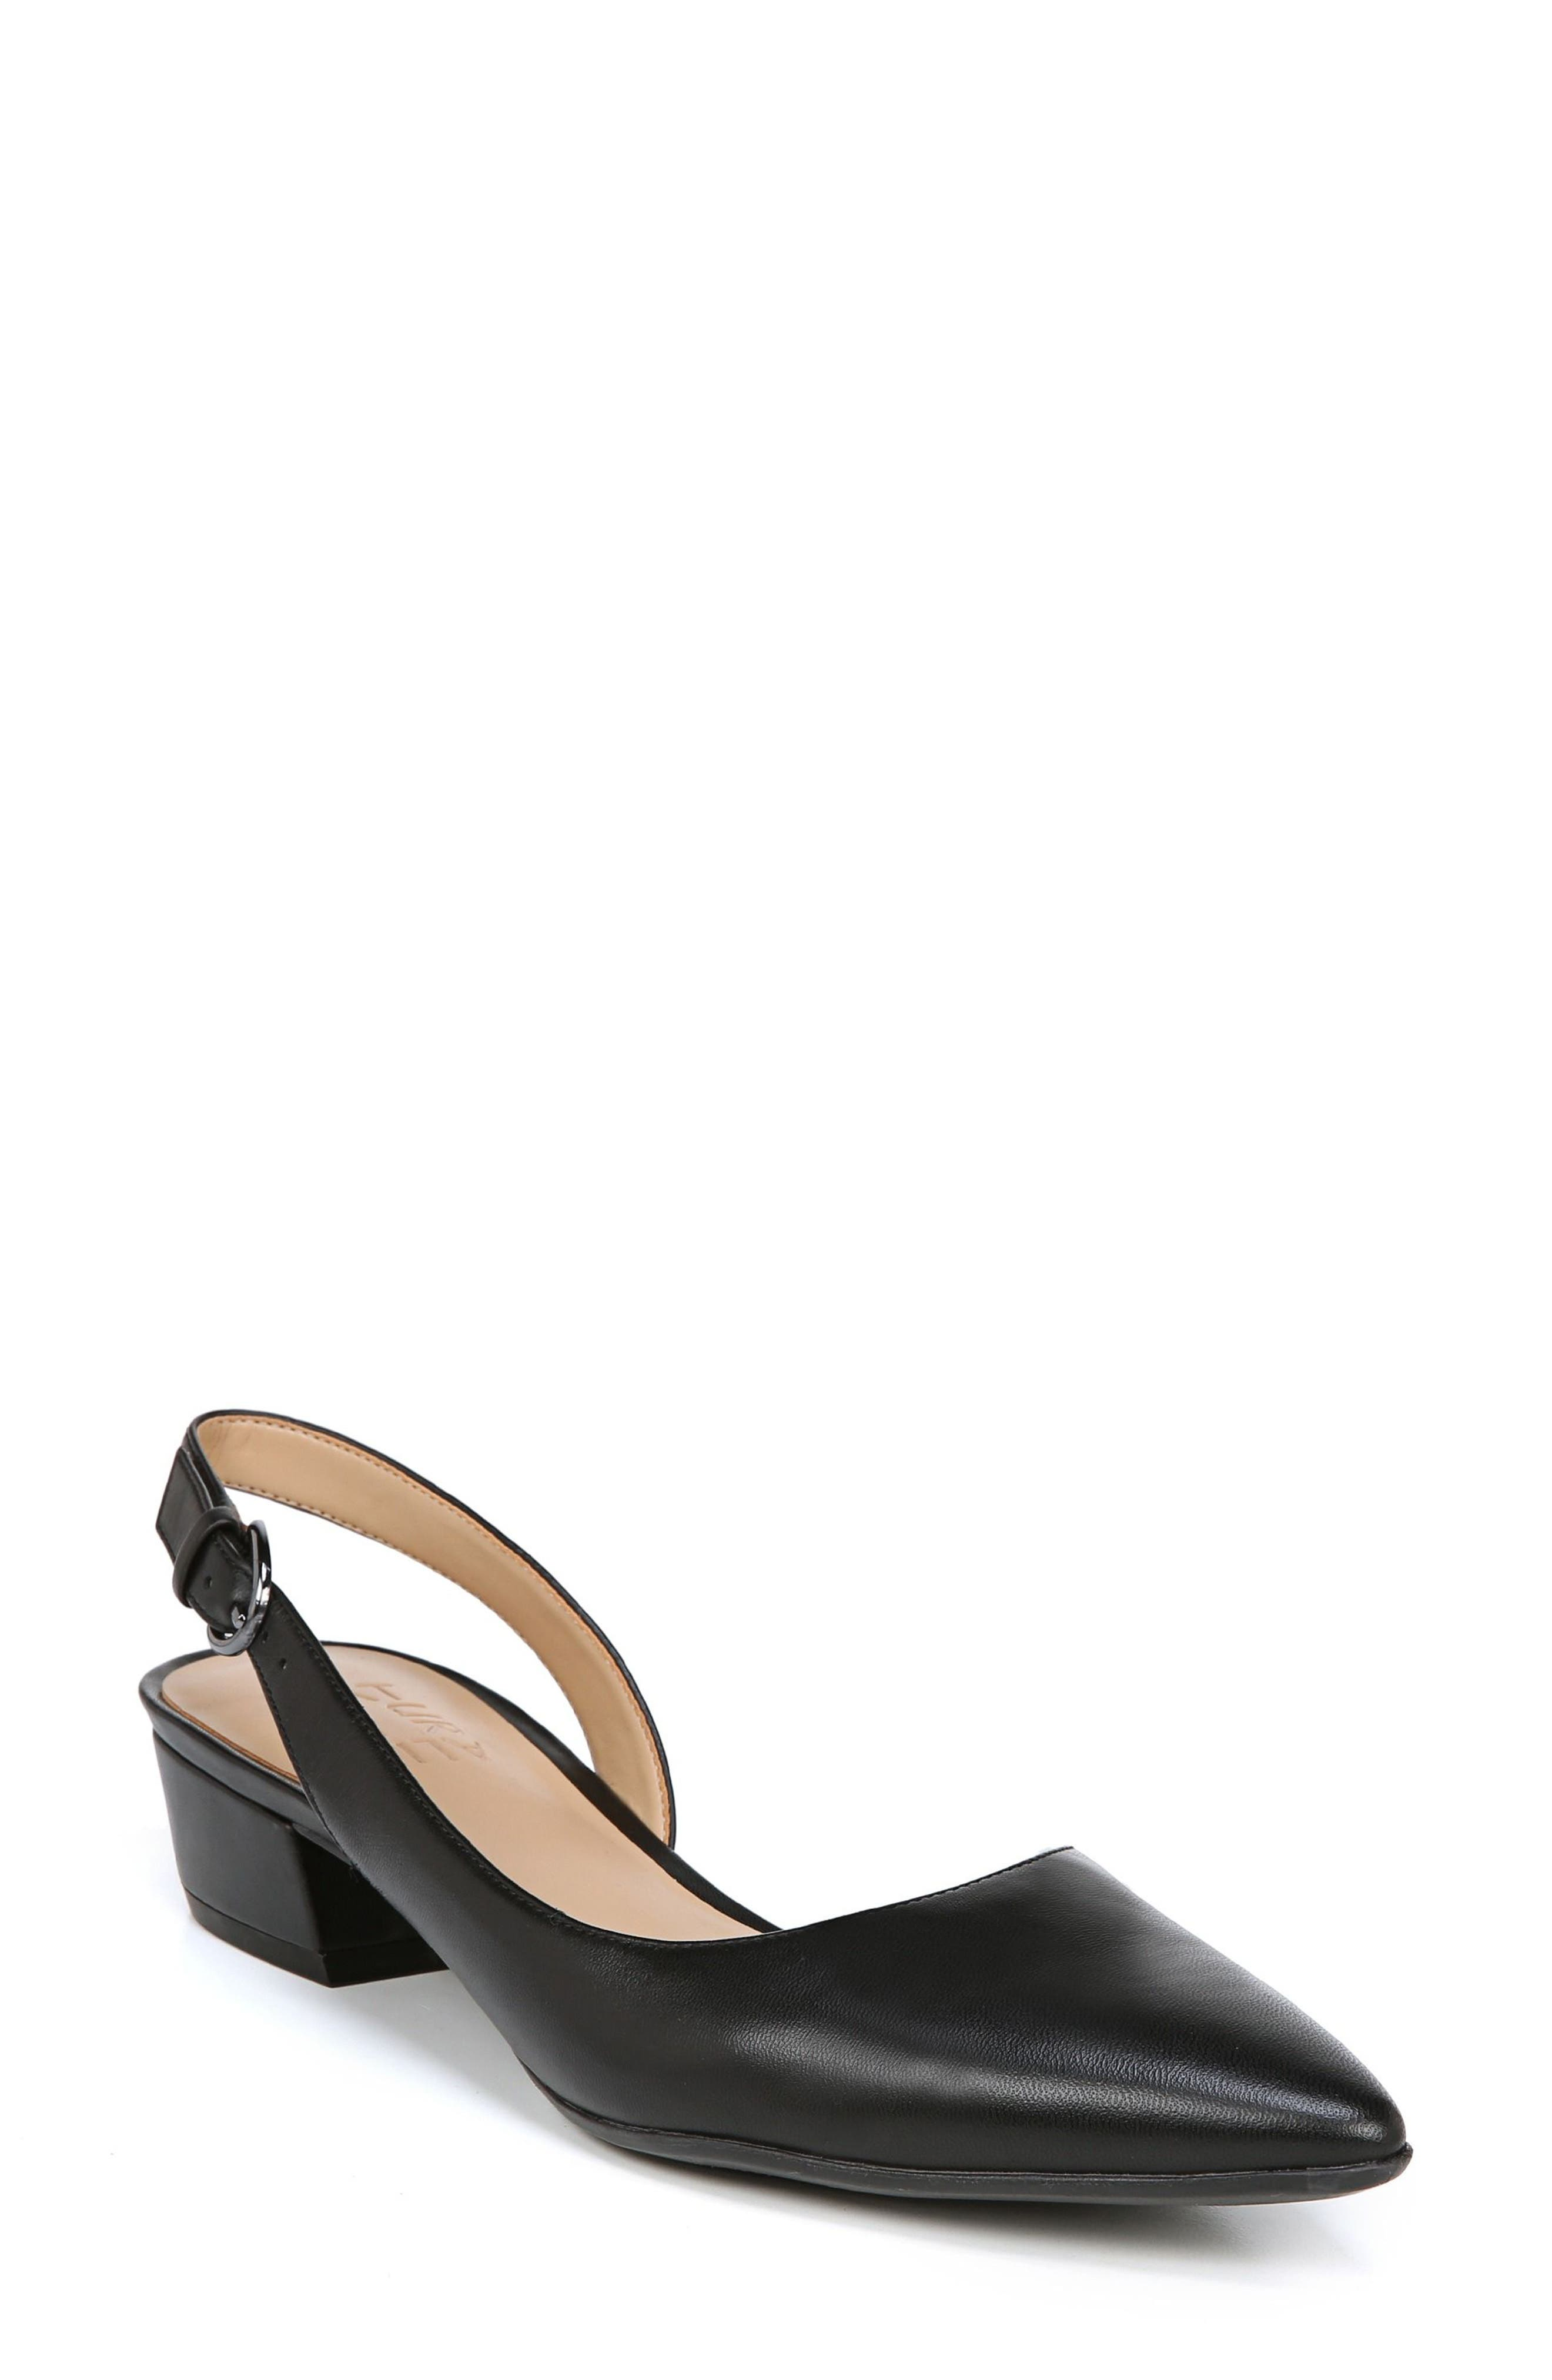 Naturalizer Banks Pump, Black